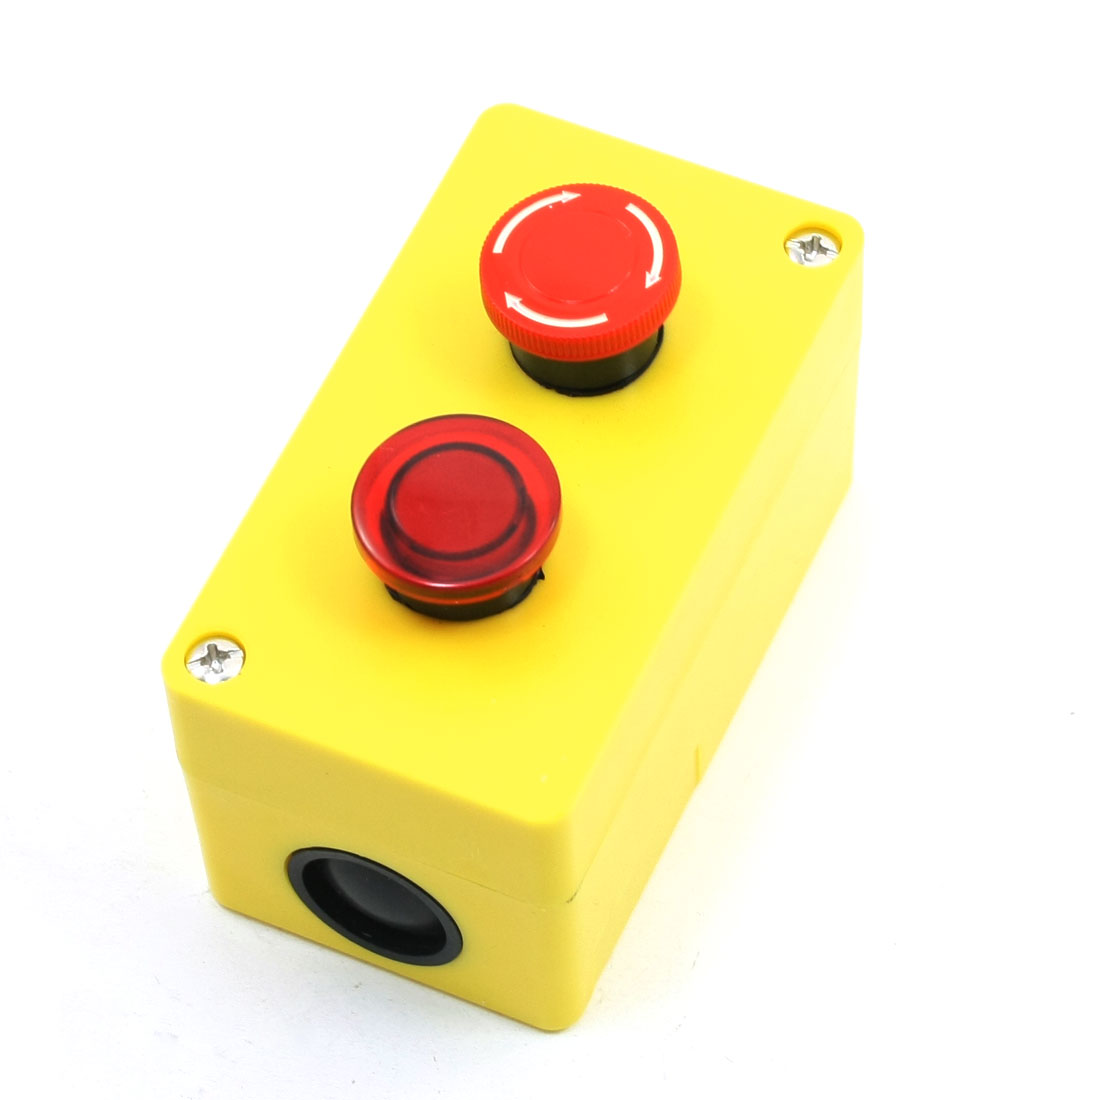 5A 250VAC Emergency Stop Switch Momentary Mushroom Head Push Button Station